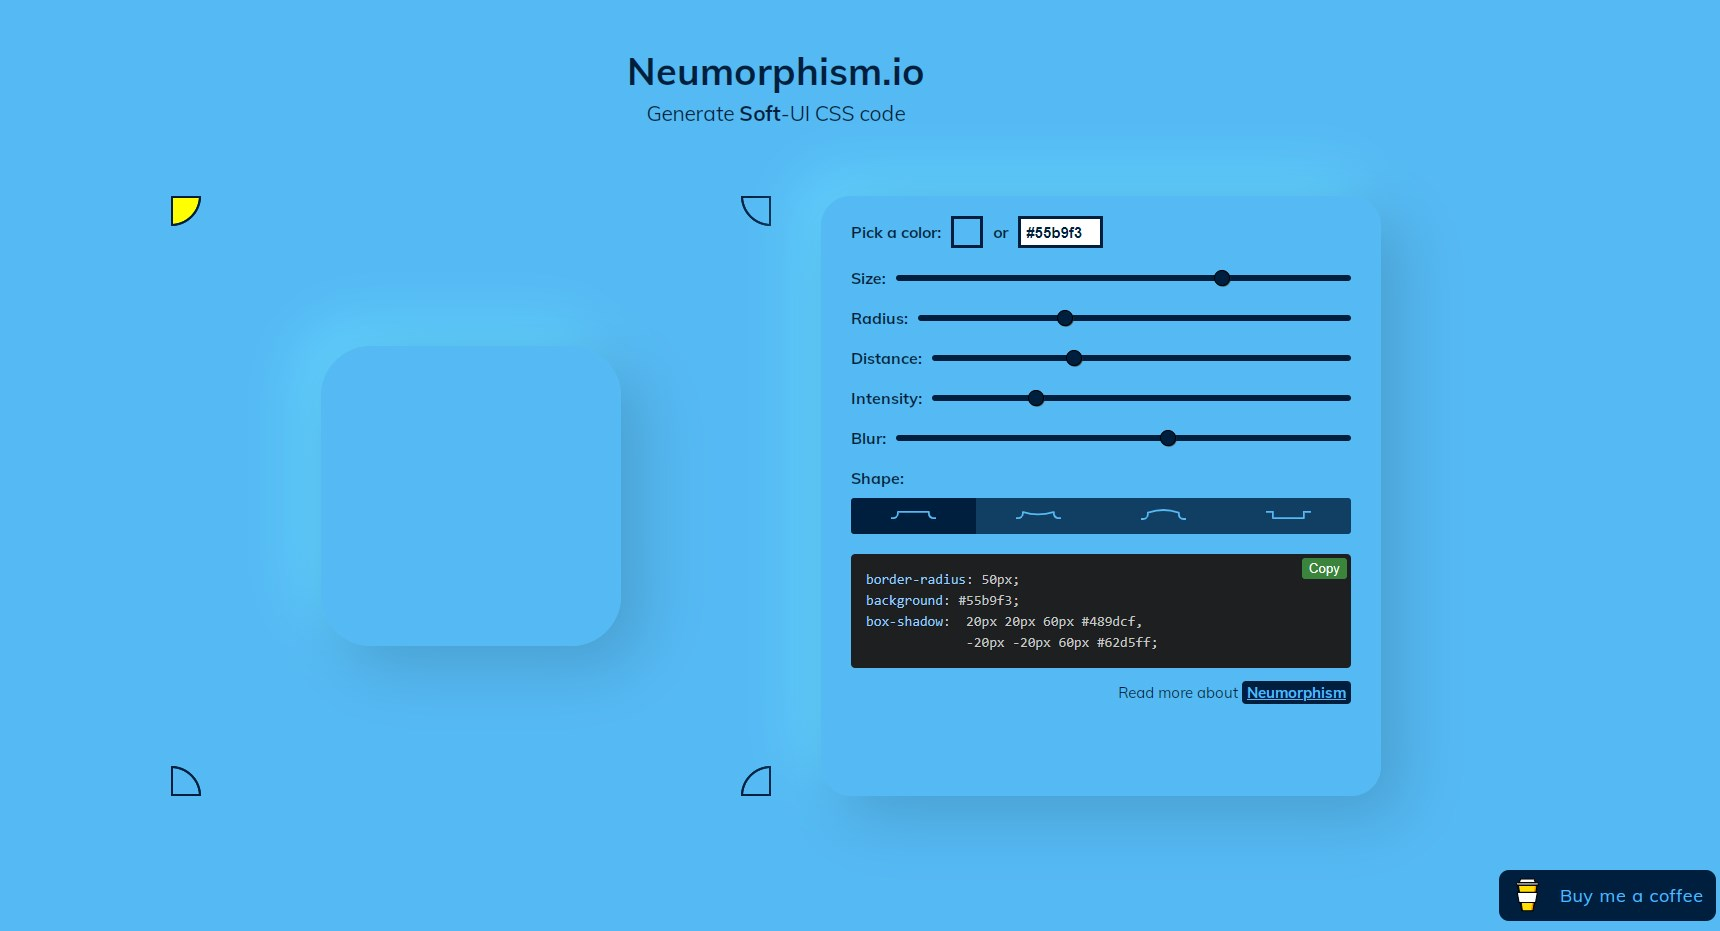 You can change elements of the special web app to create a neumorphic UI with CSS